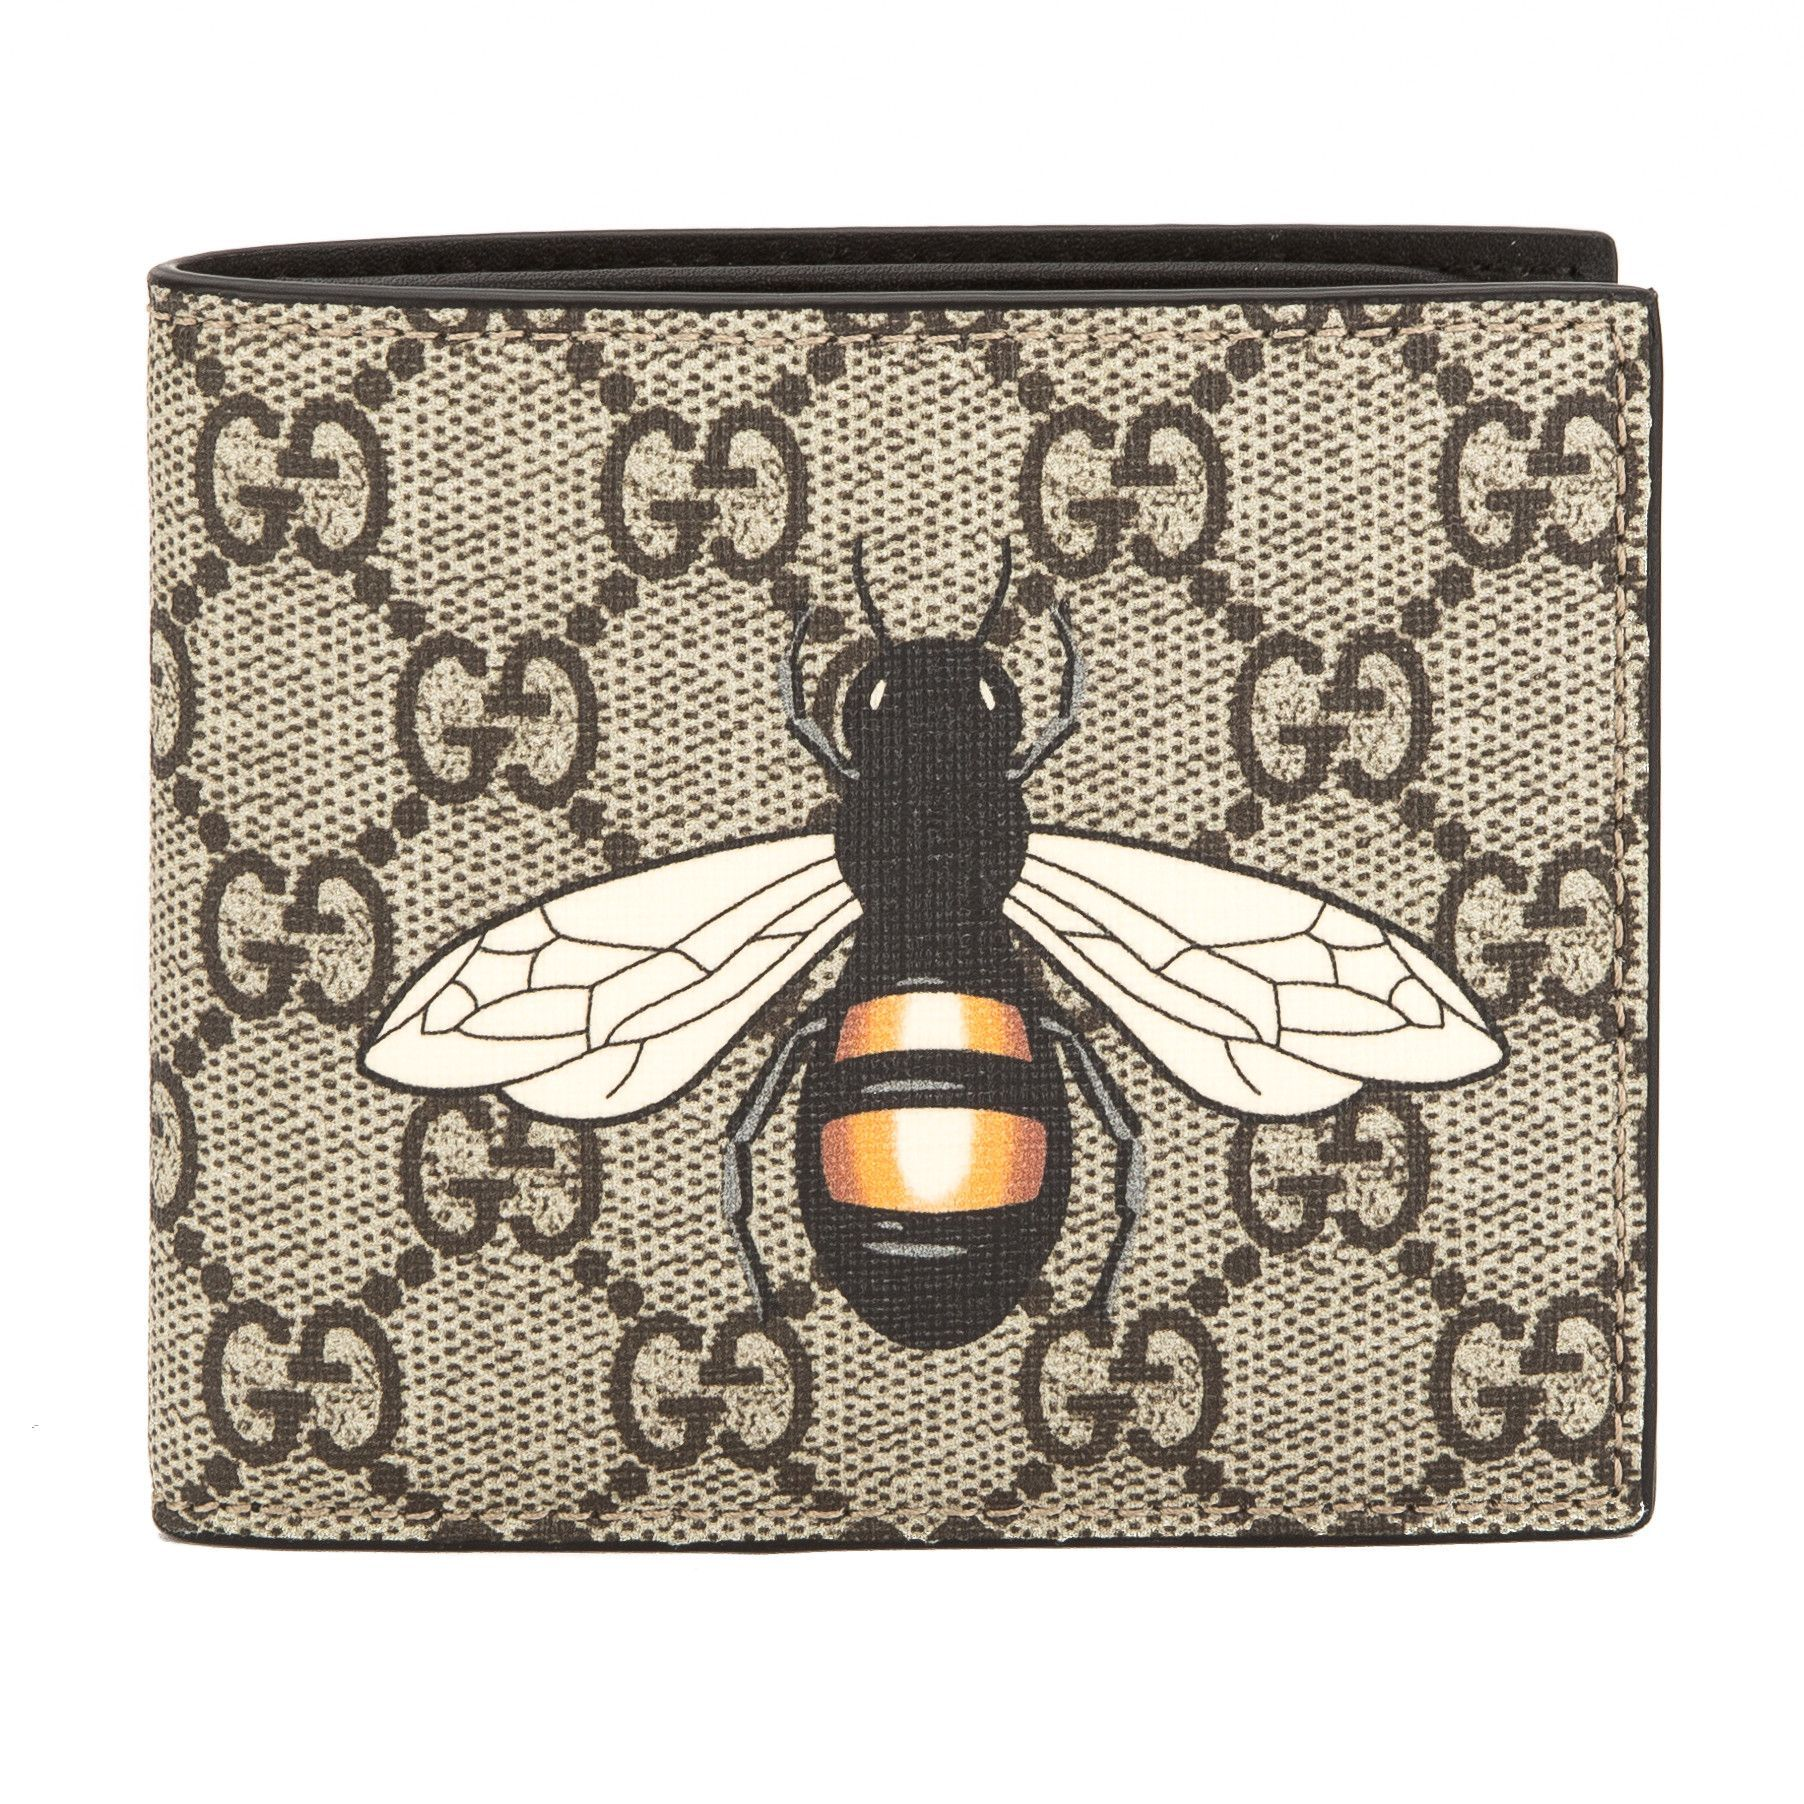 8e3f8d7a9c950 Gucci GG Supreme Canvas Bee Print Wallet (New with Tags)